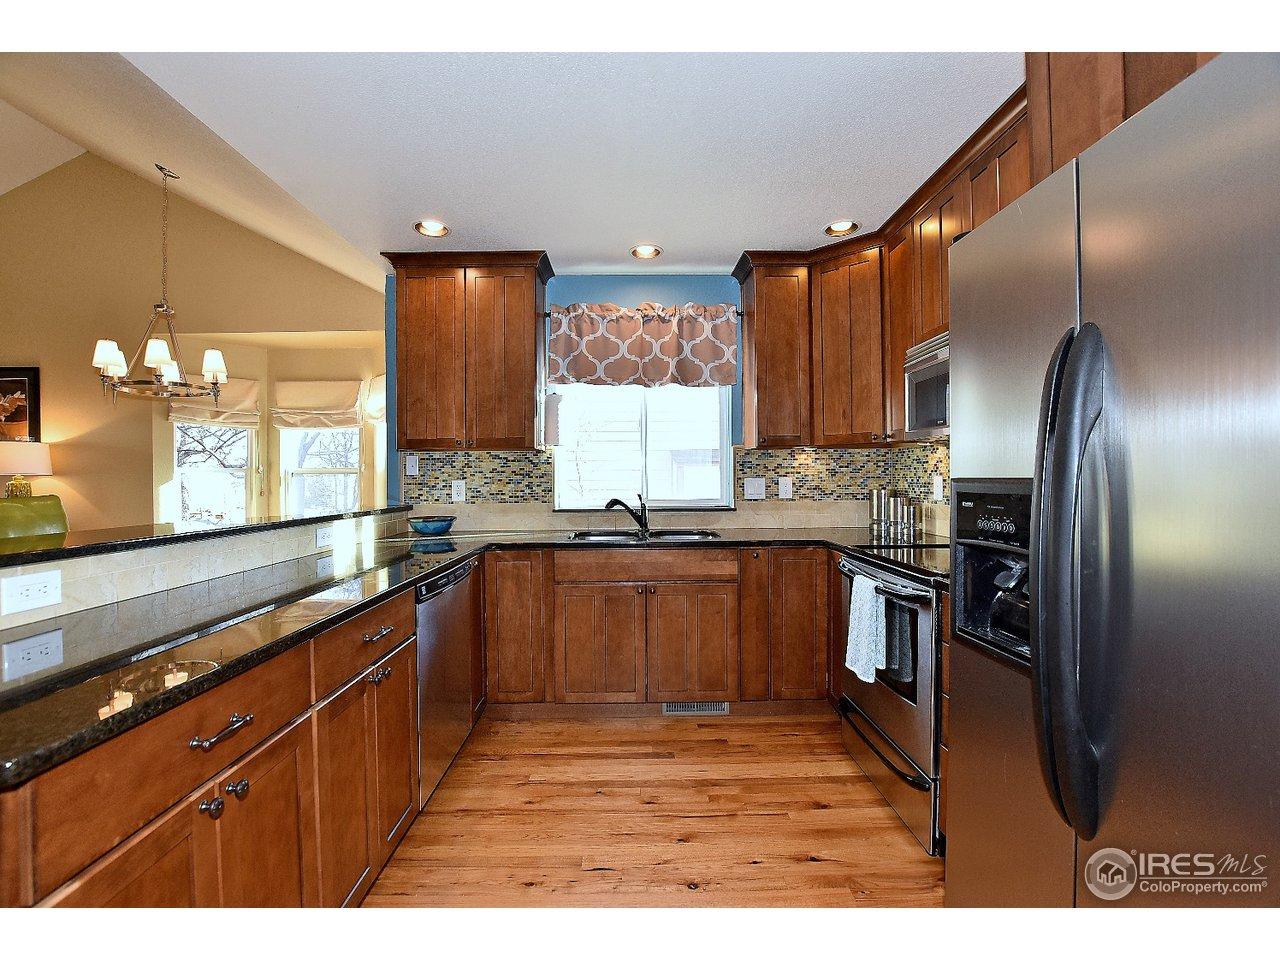 Awesome kitchen with hickory wood floors